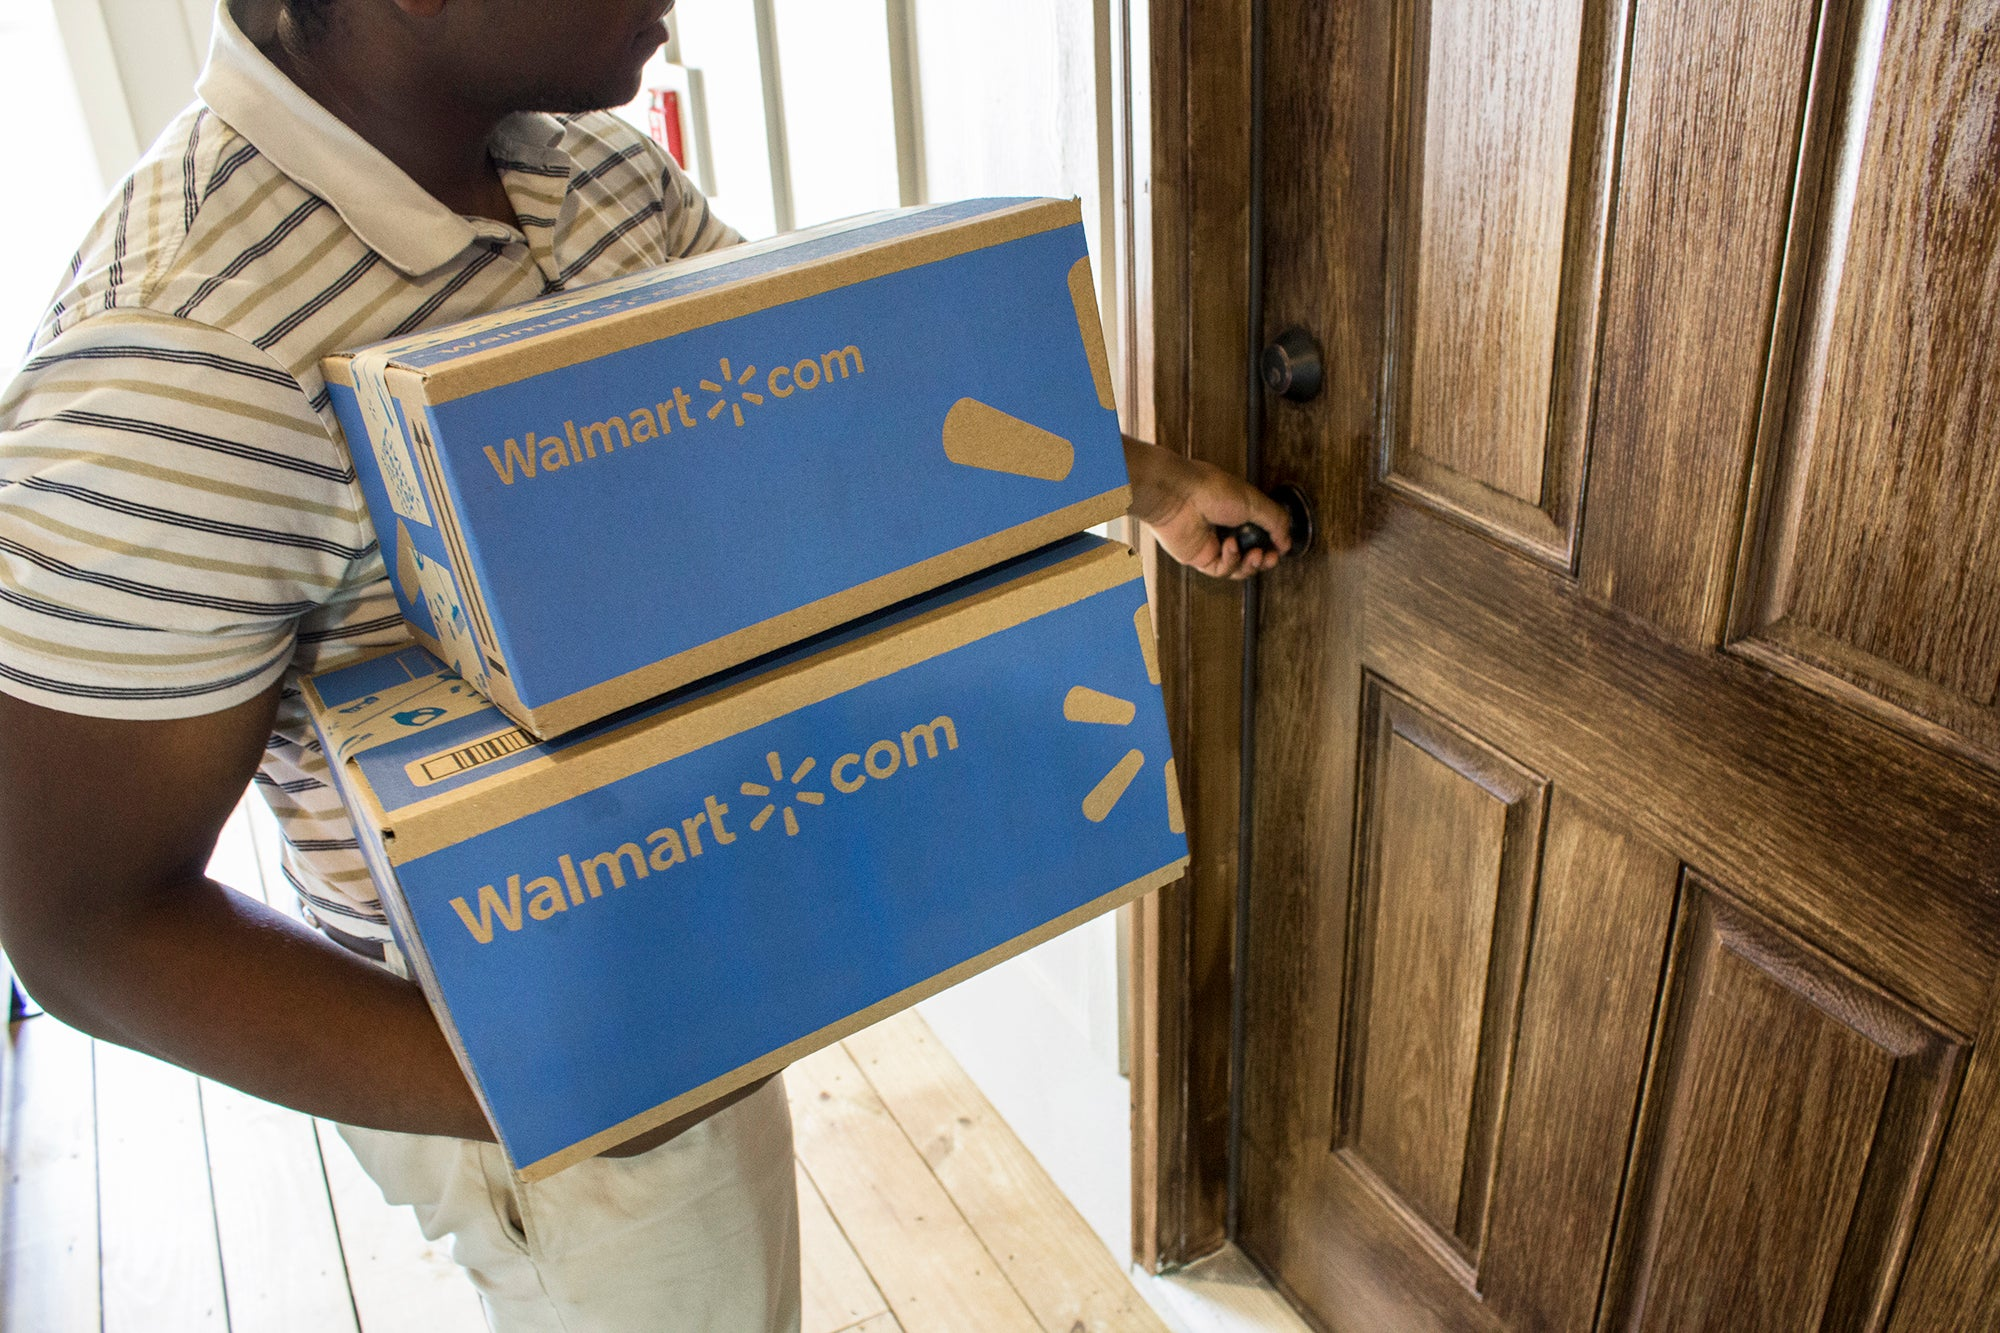 Walmart Still Has a Lot of Work to Do to Catch Up With Amazon - Motley Fool